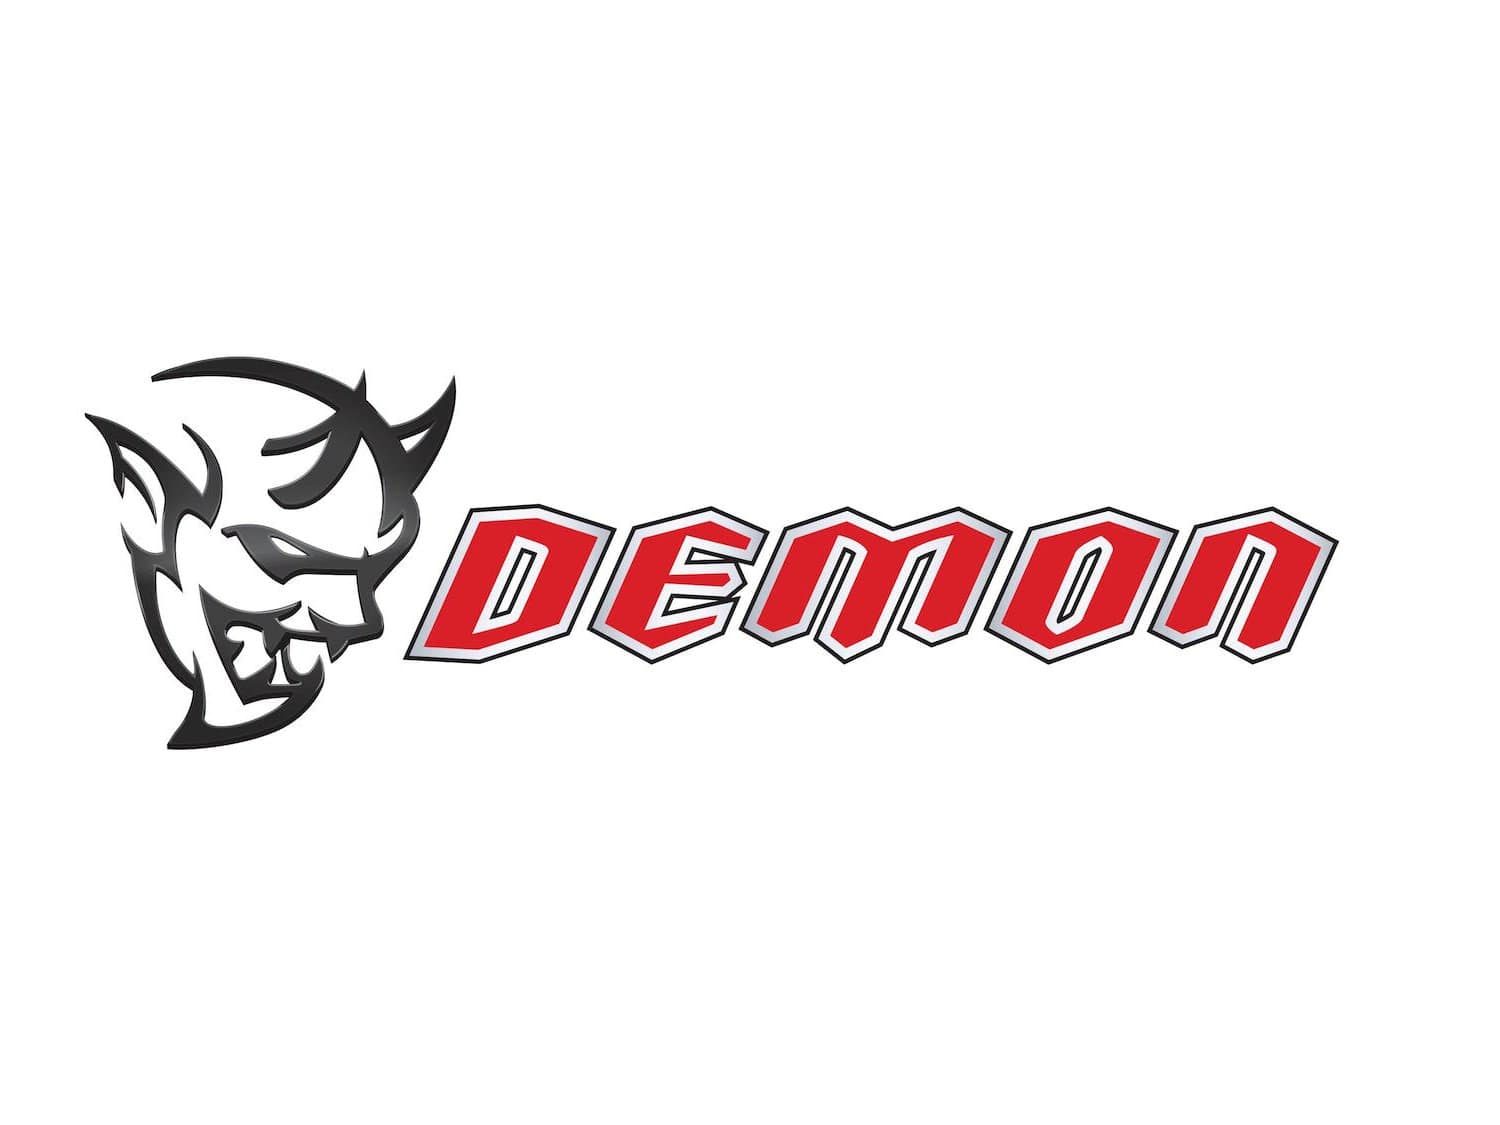 dodge demon decal White 10 By 3 Inches